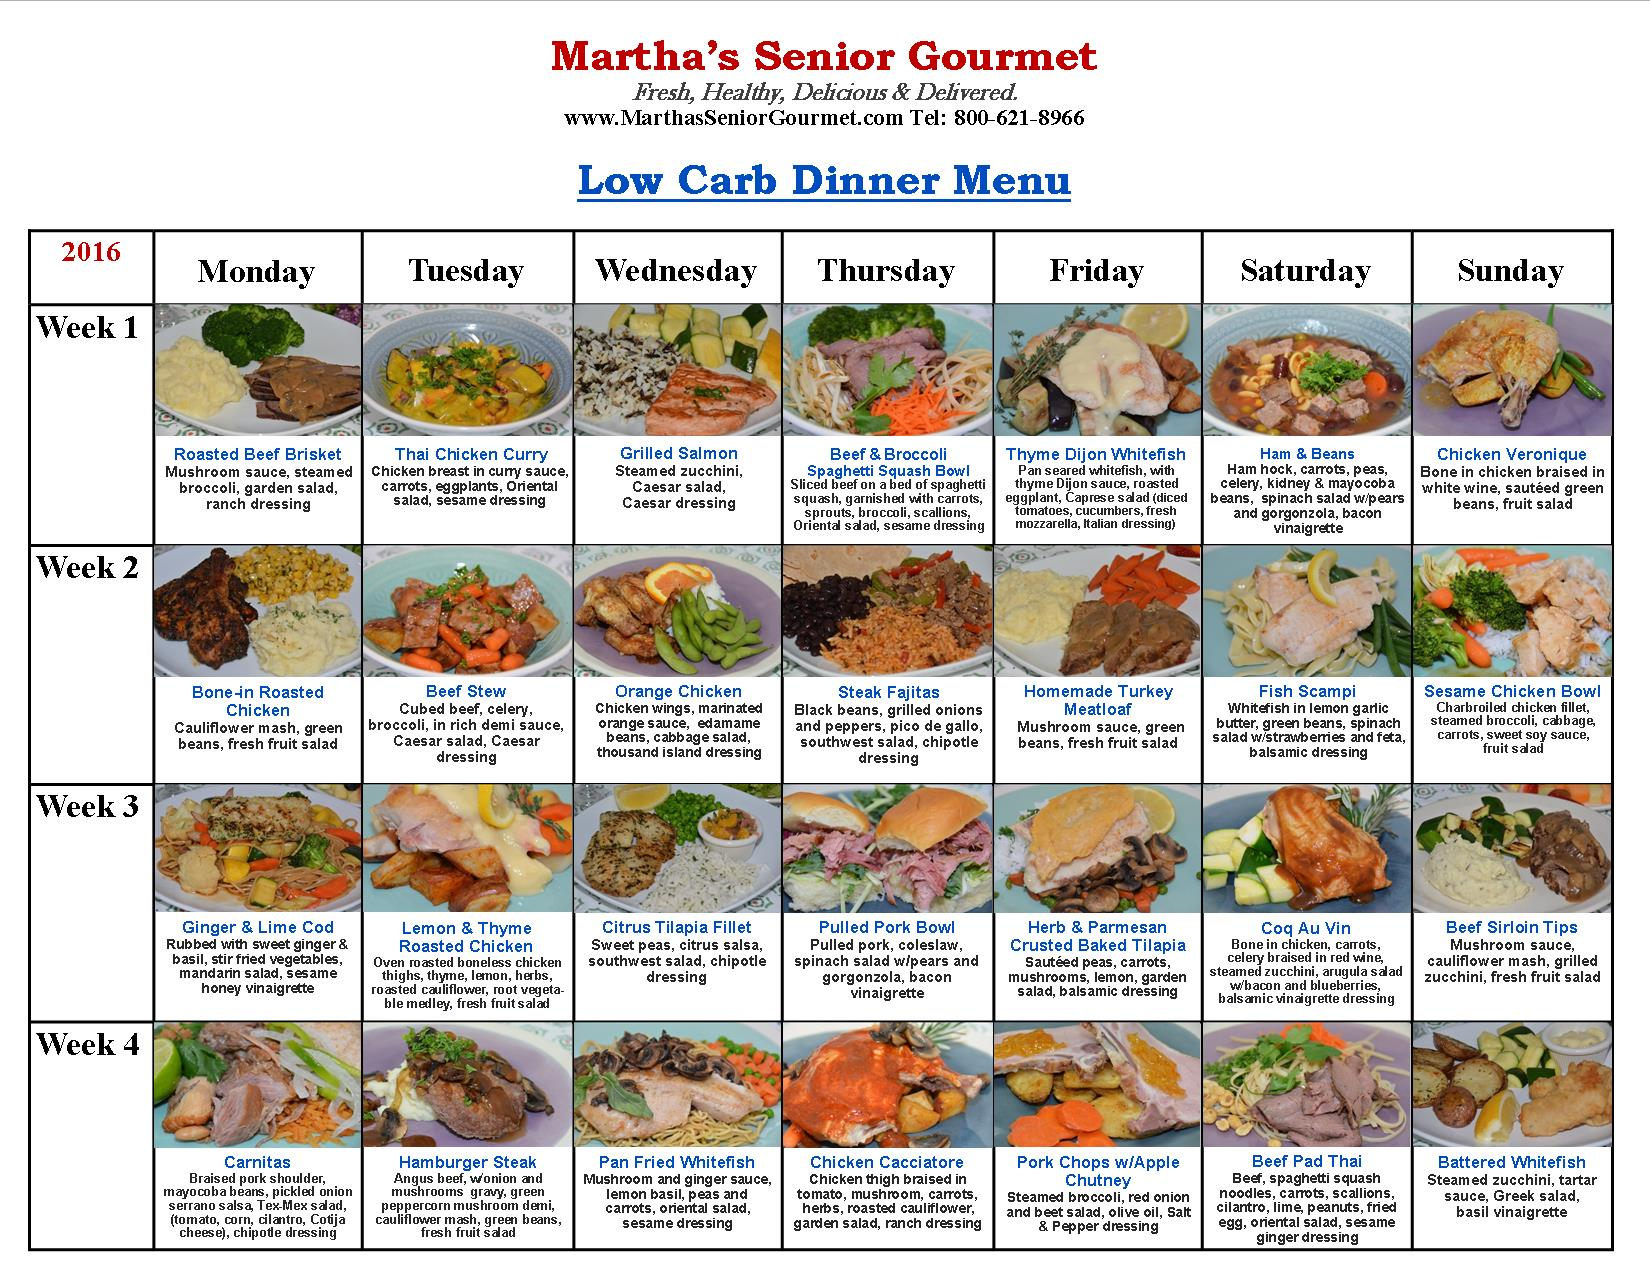 Martha's Senior Gourmet Low Carb Dinner Menu